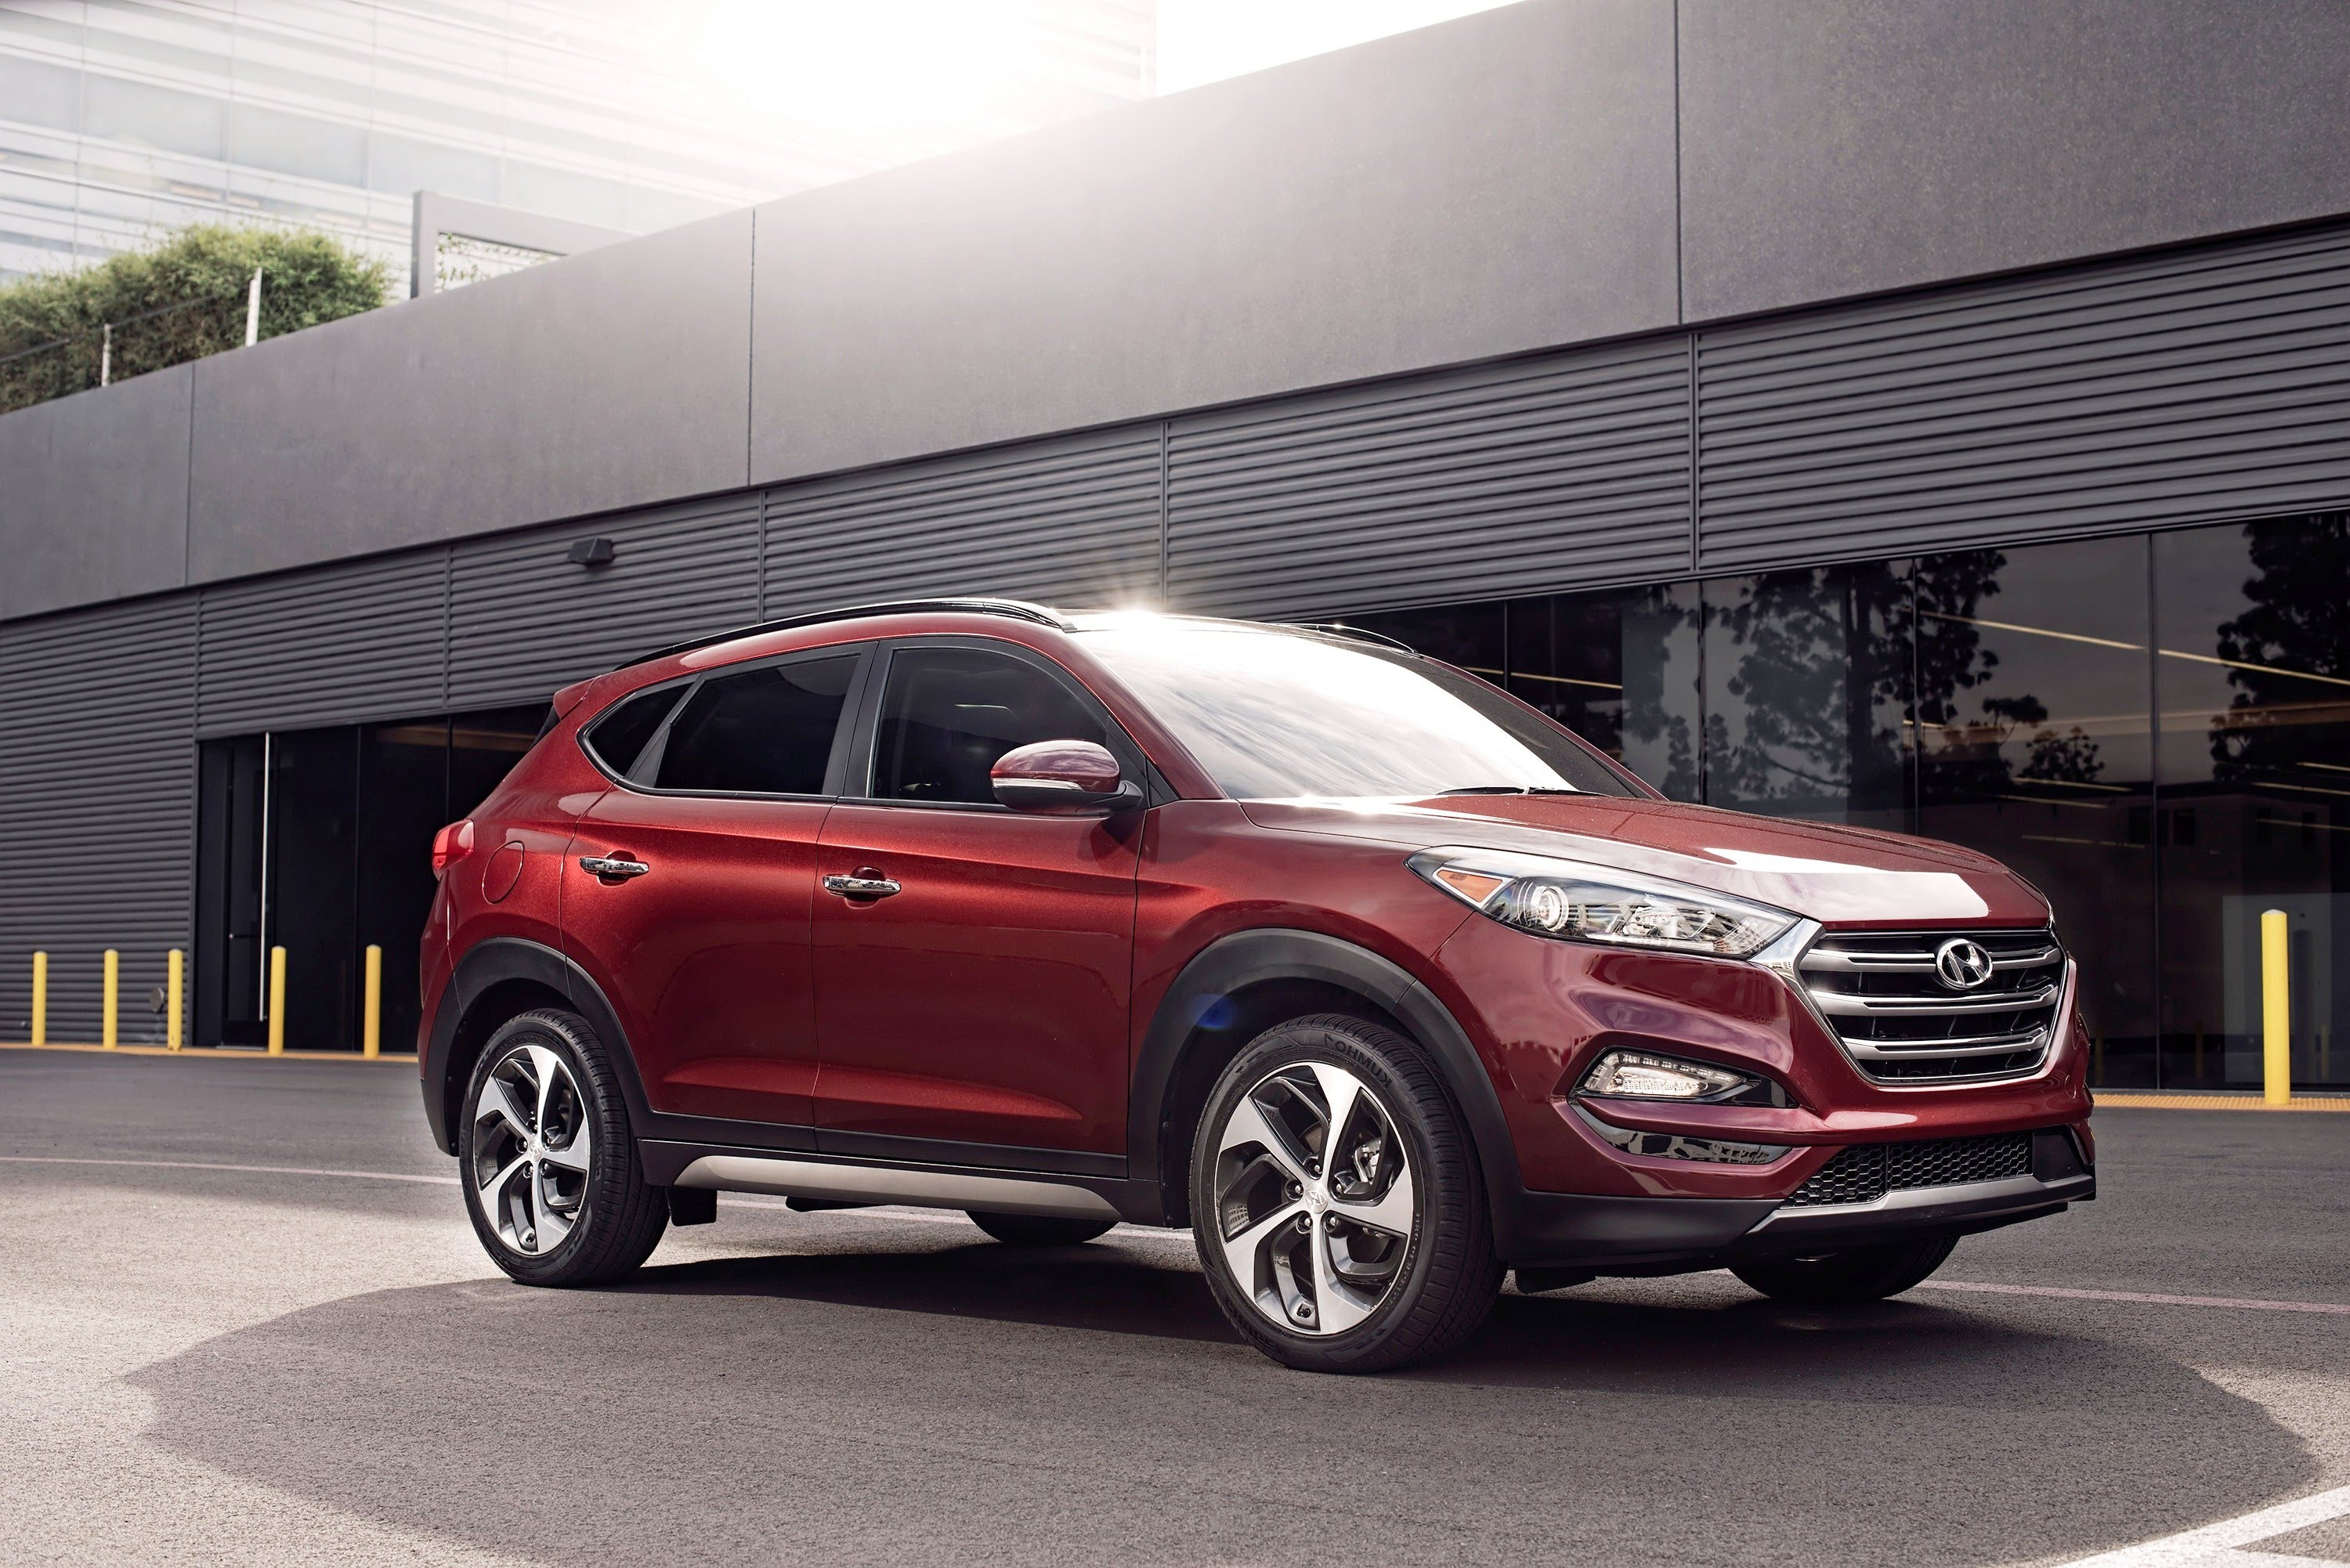 Hyundai Tucson reviews model